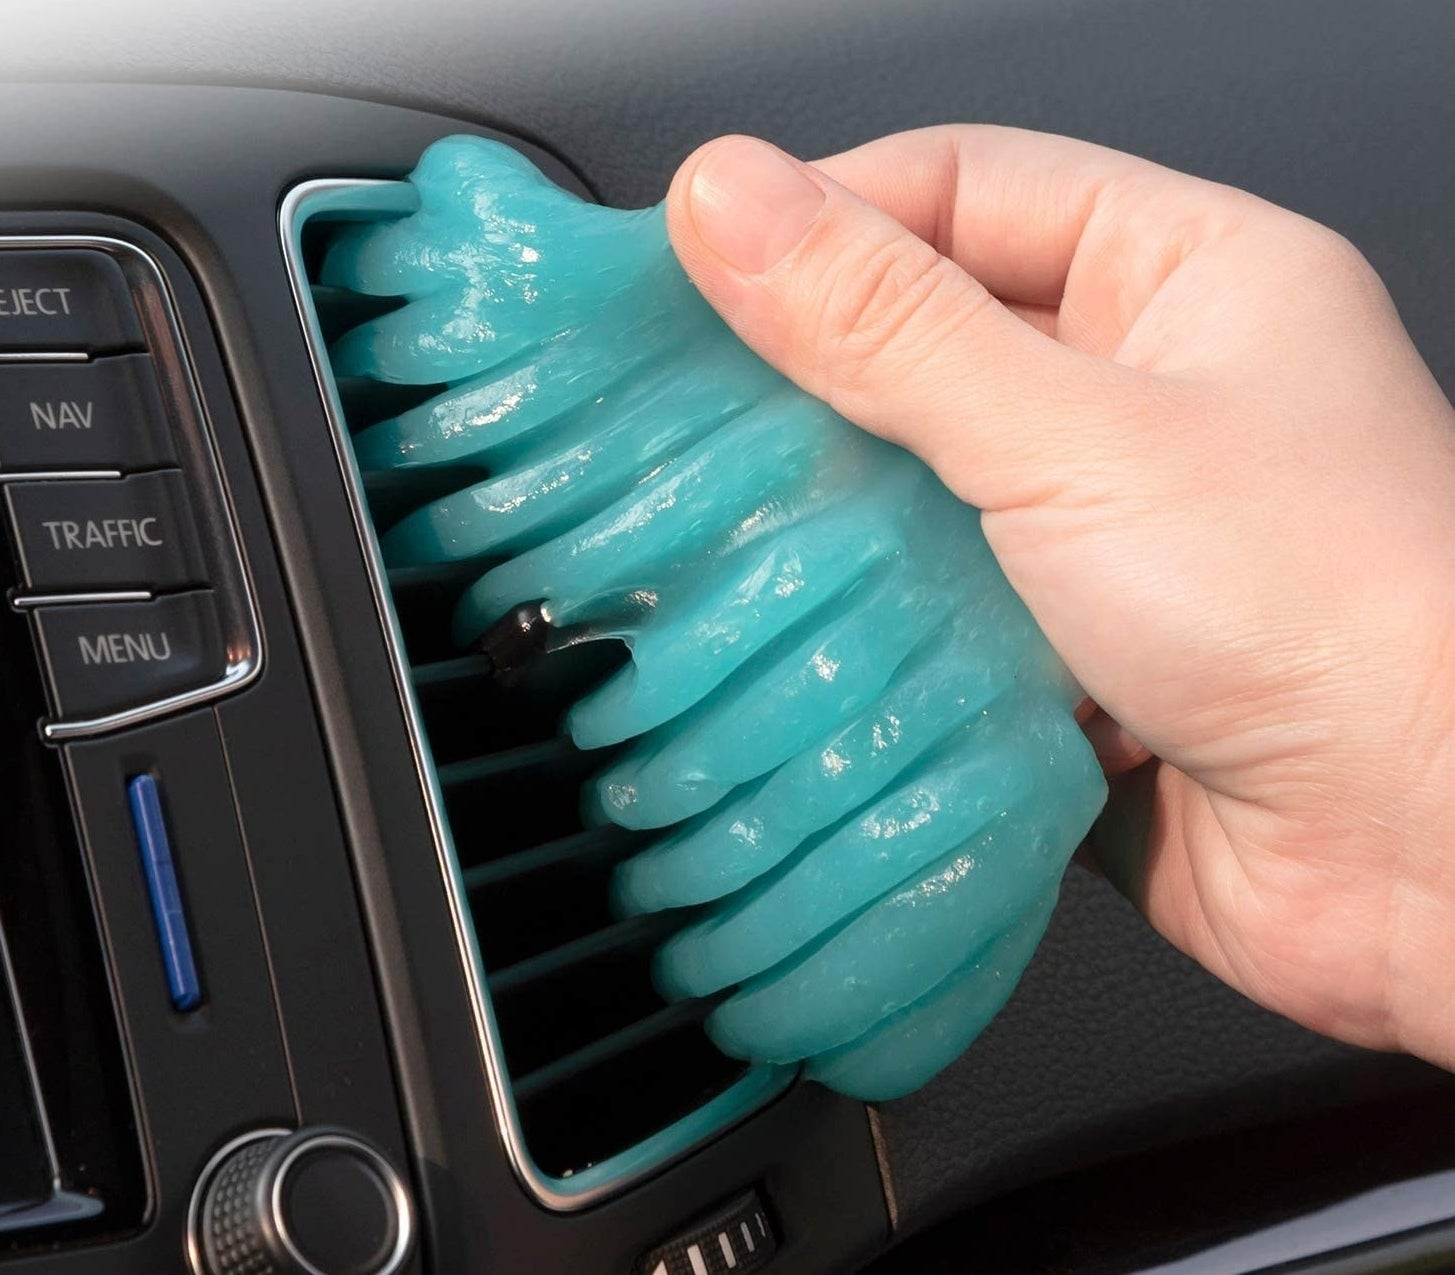 a hand pulls the cleaning putty out of a car vent